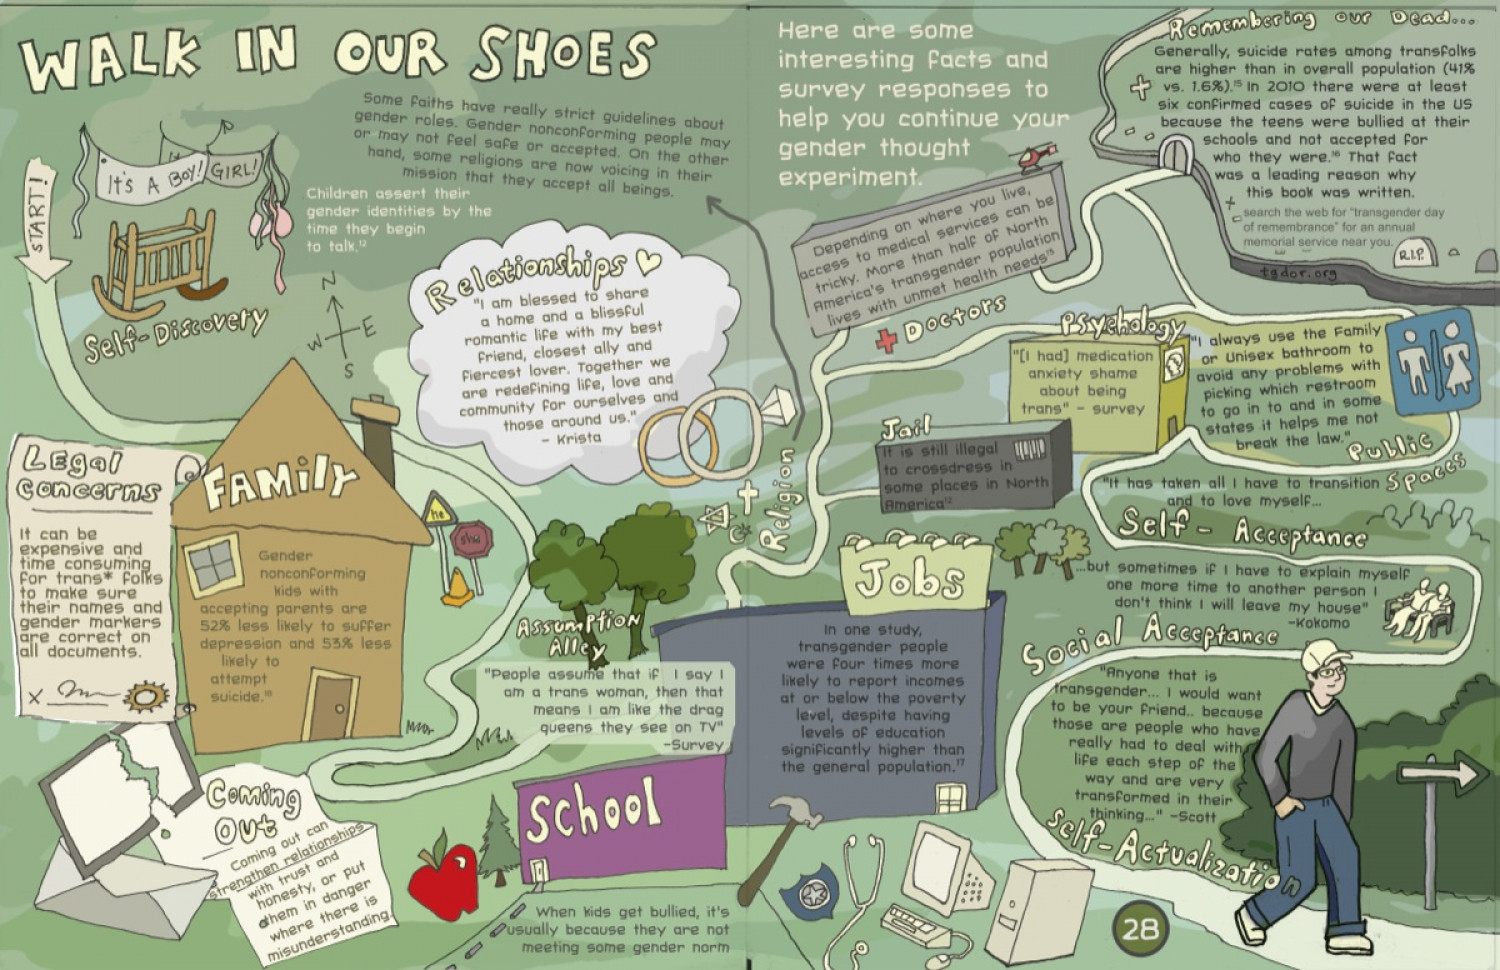 Walk in Our Shoes Infographic